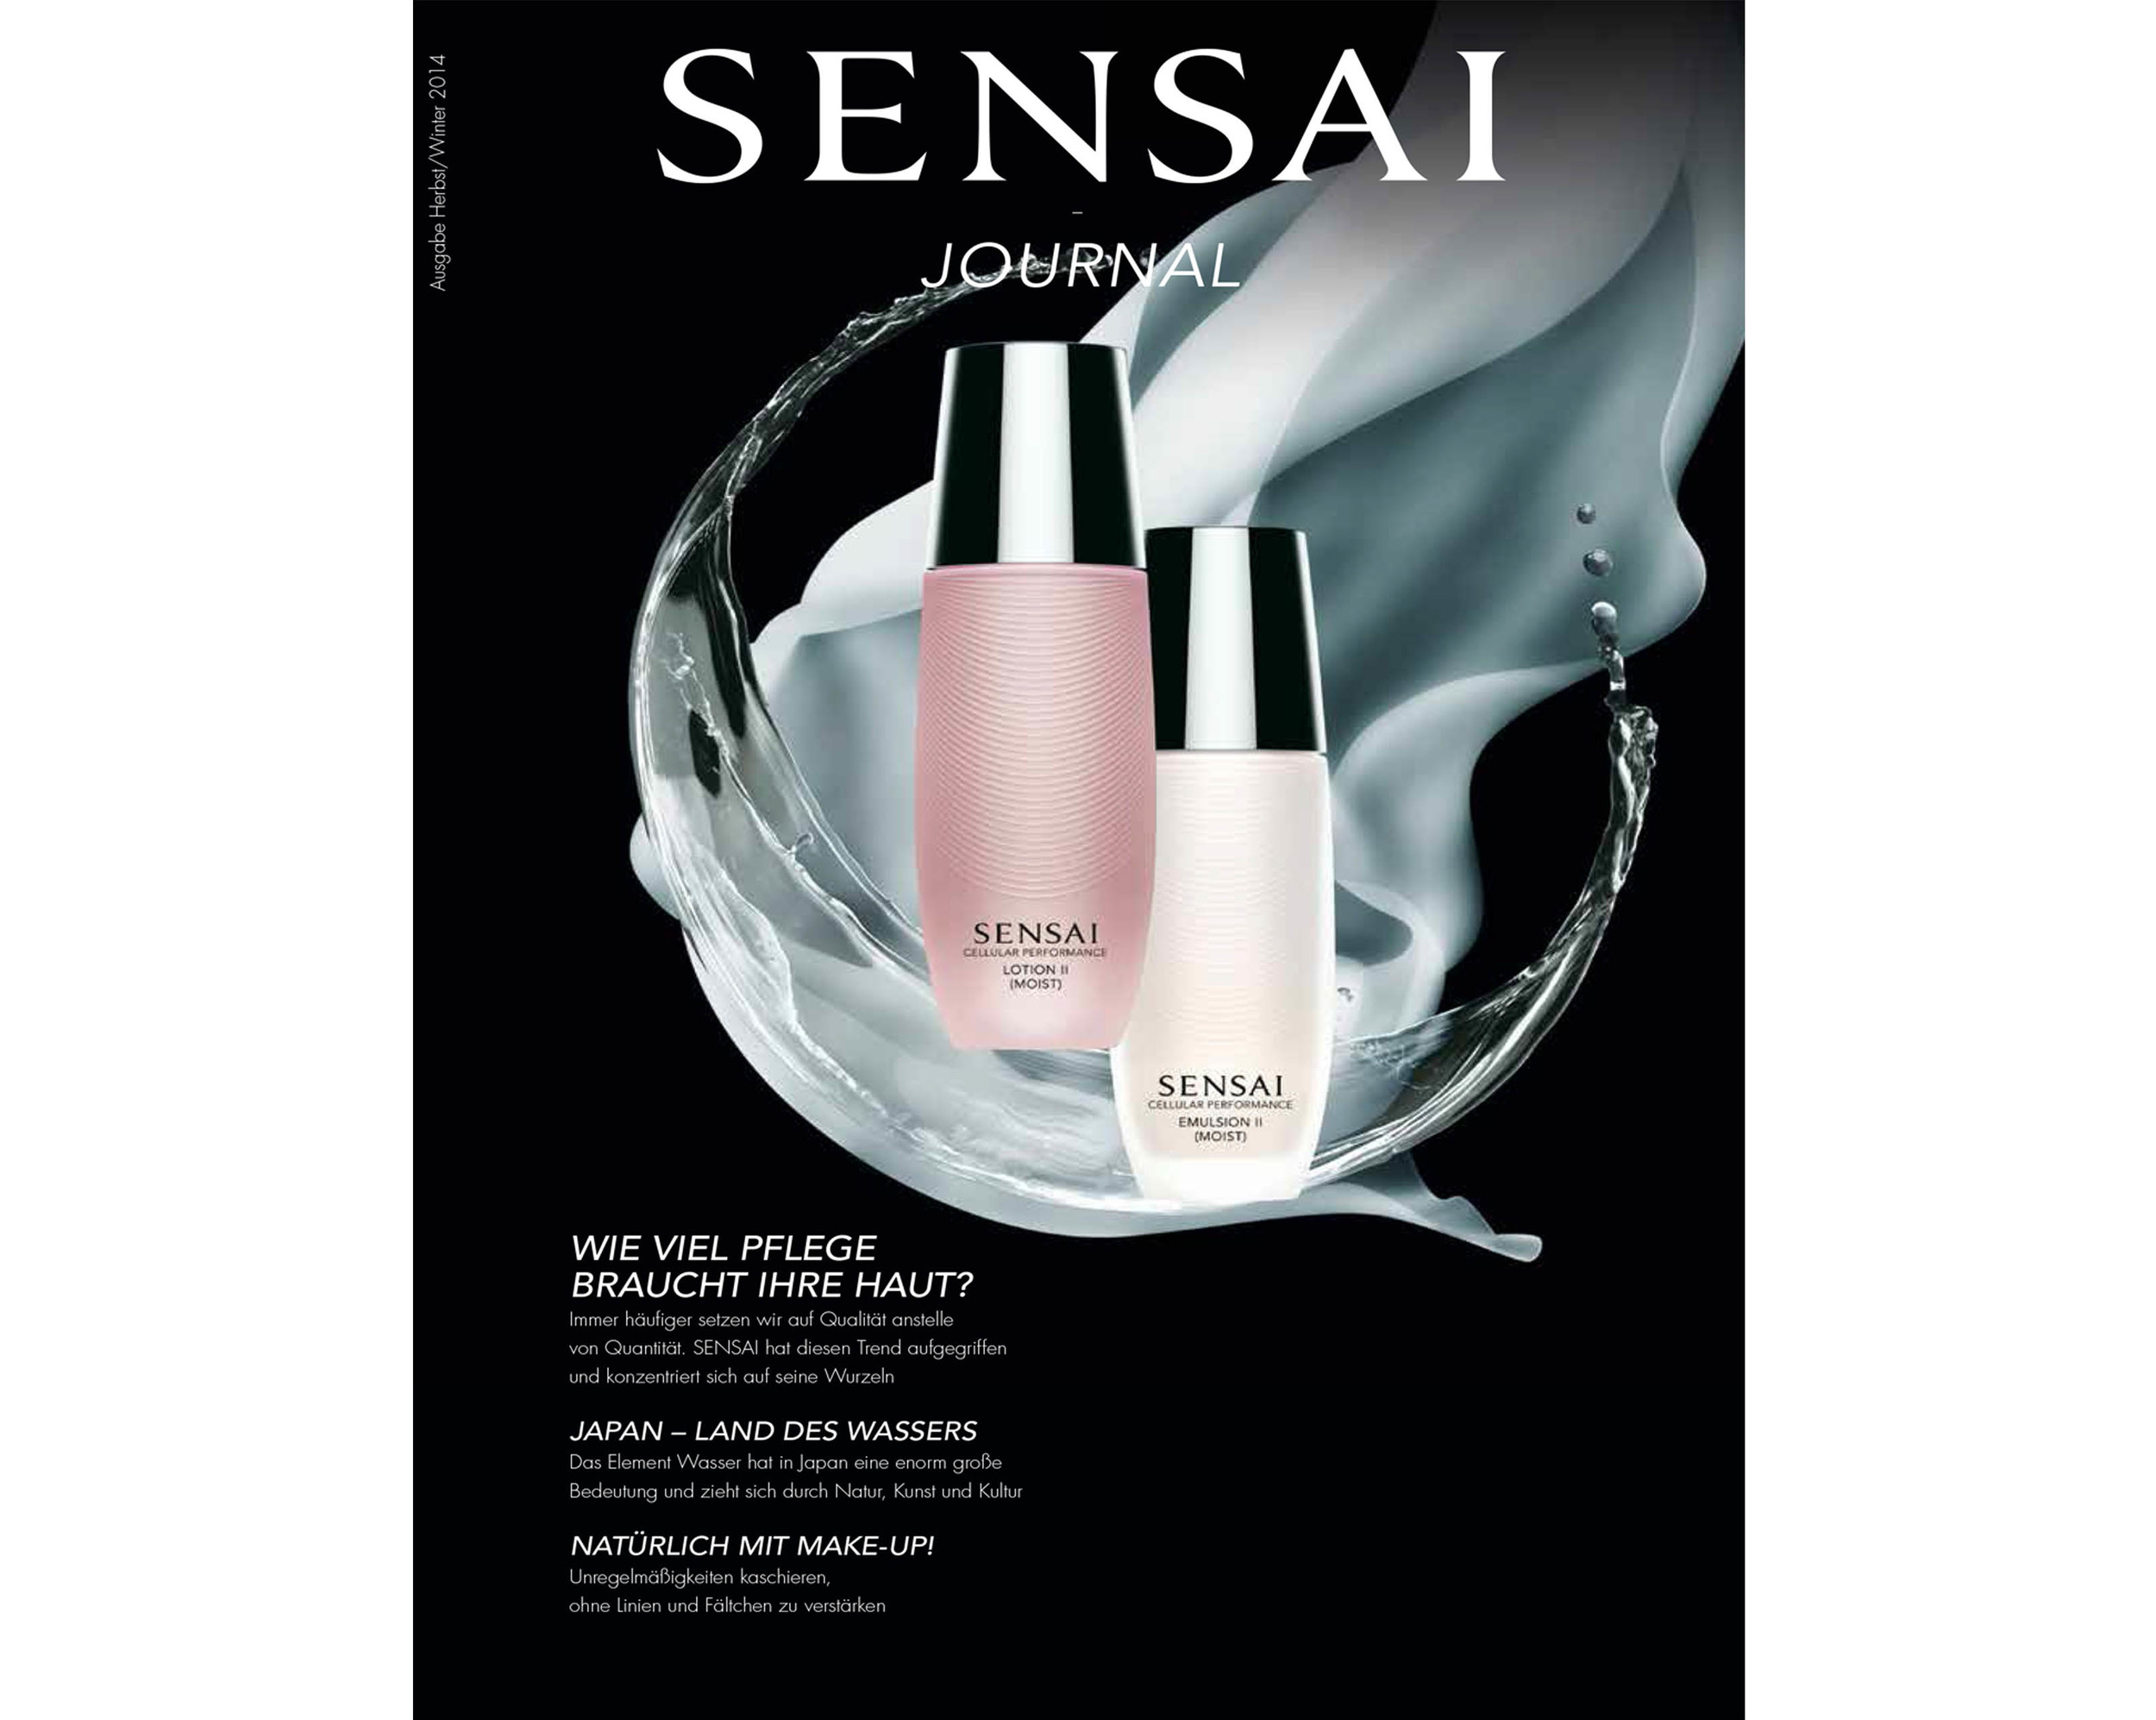 Sensai_journal_cover_08.jpg